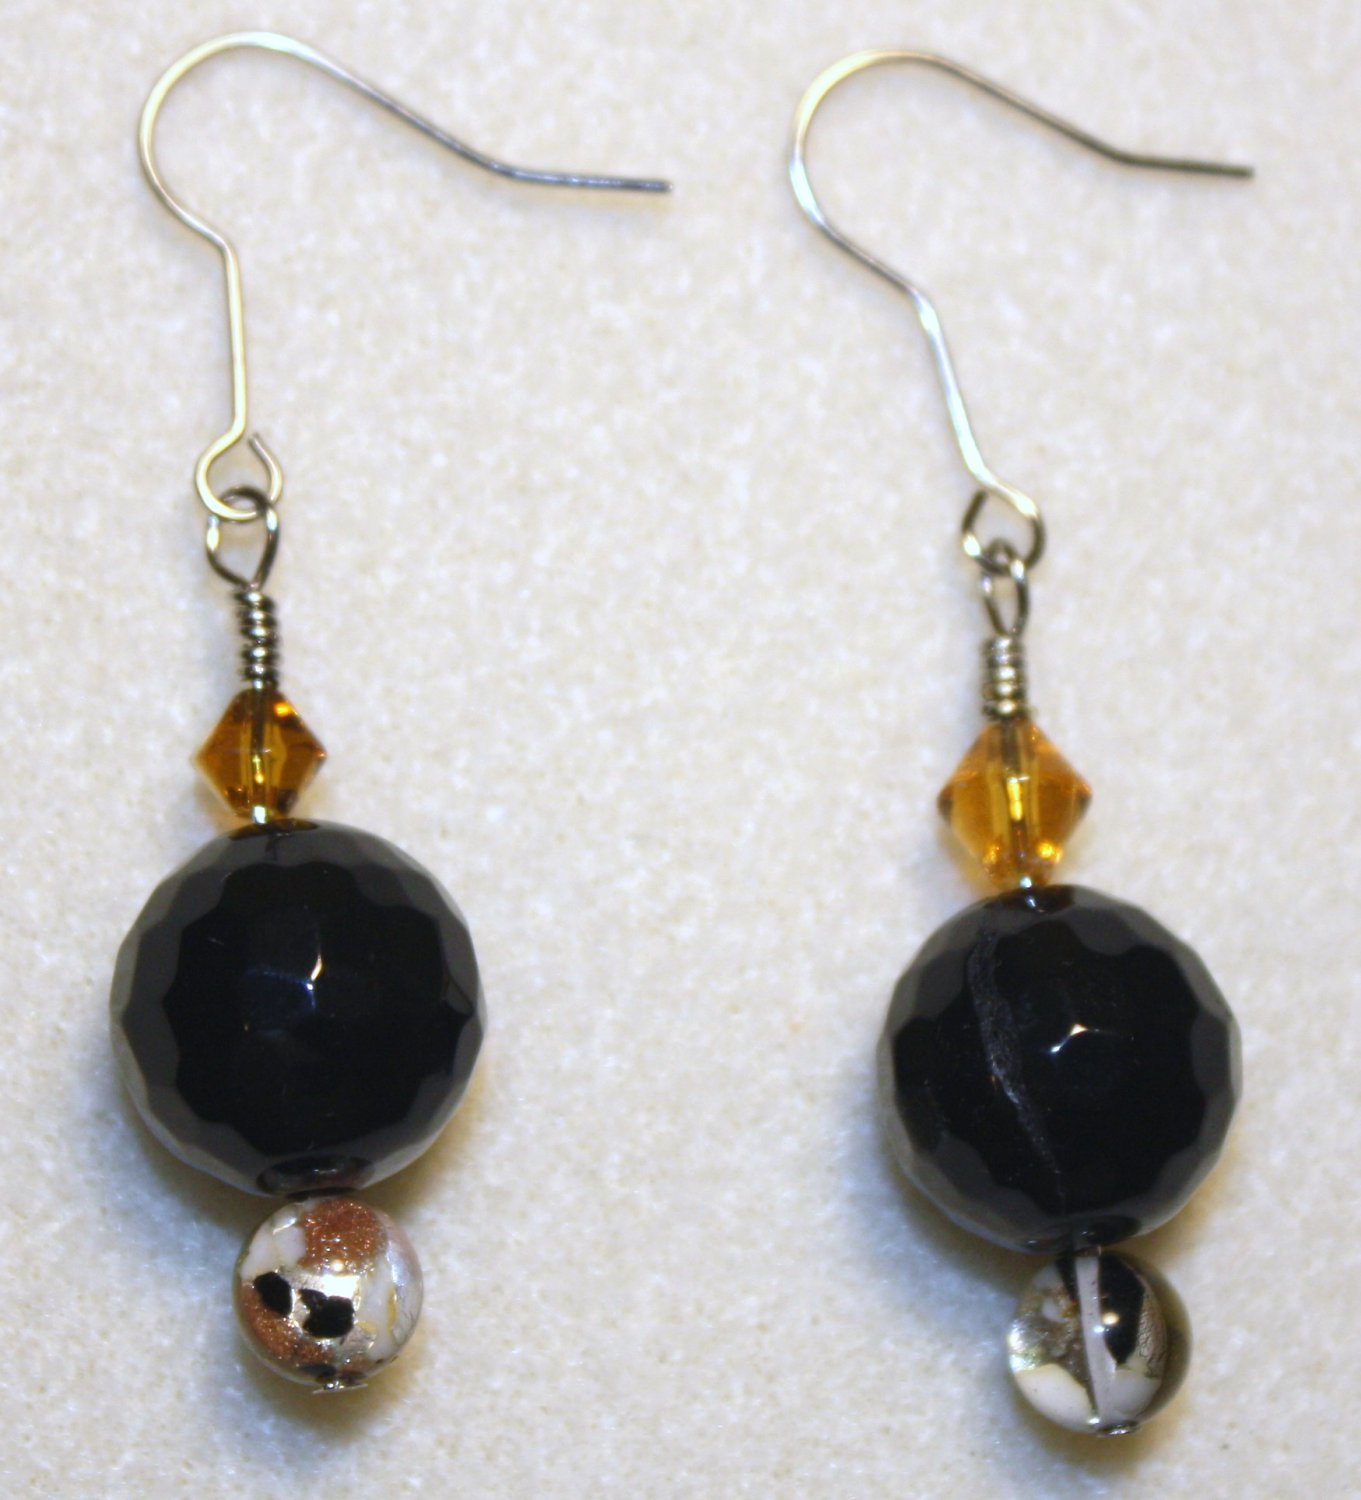 Black Agate Earrings - Item #E25